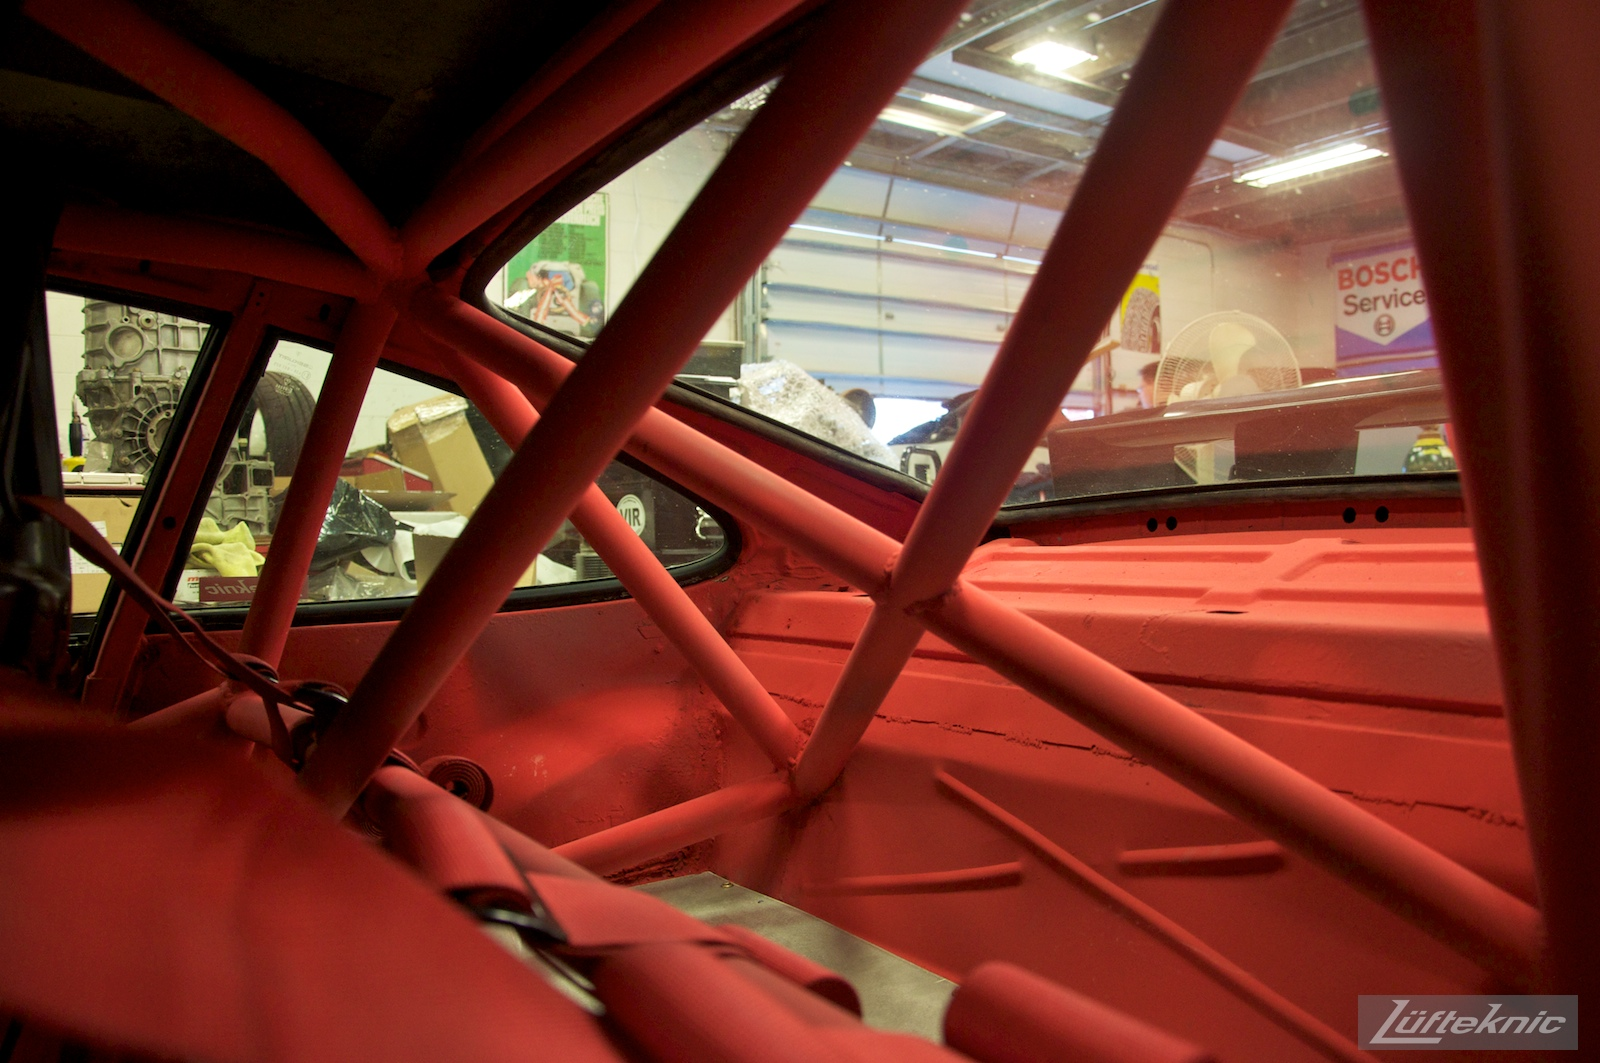 Roll cage details on the Lüfteknic #projectstuka Porsche 930 Turbo